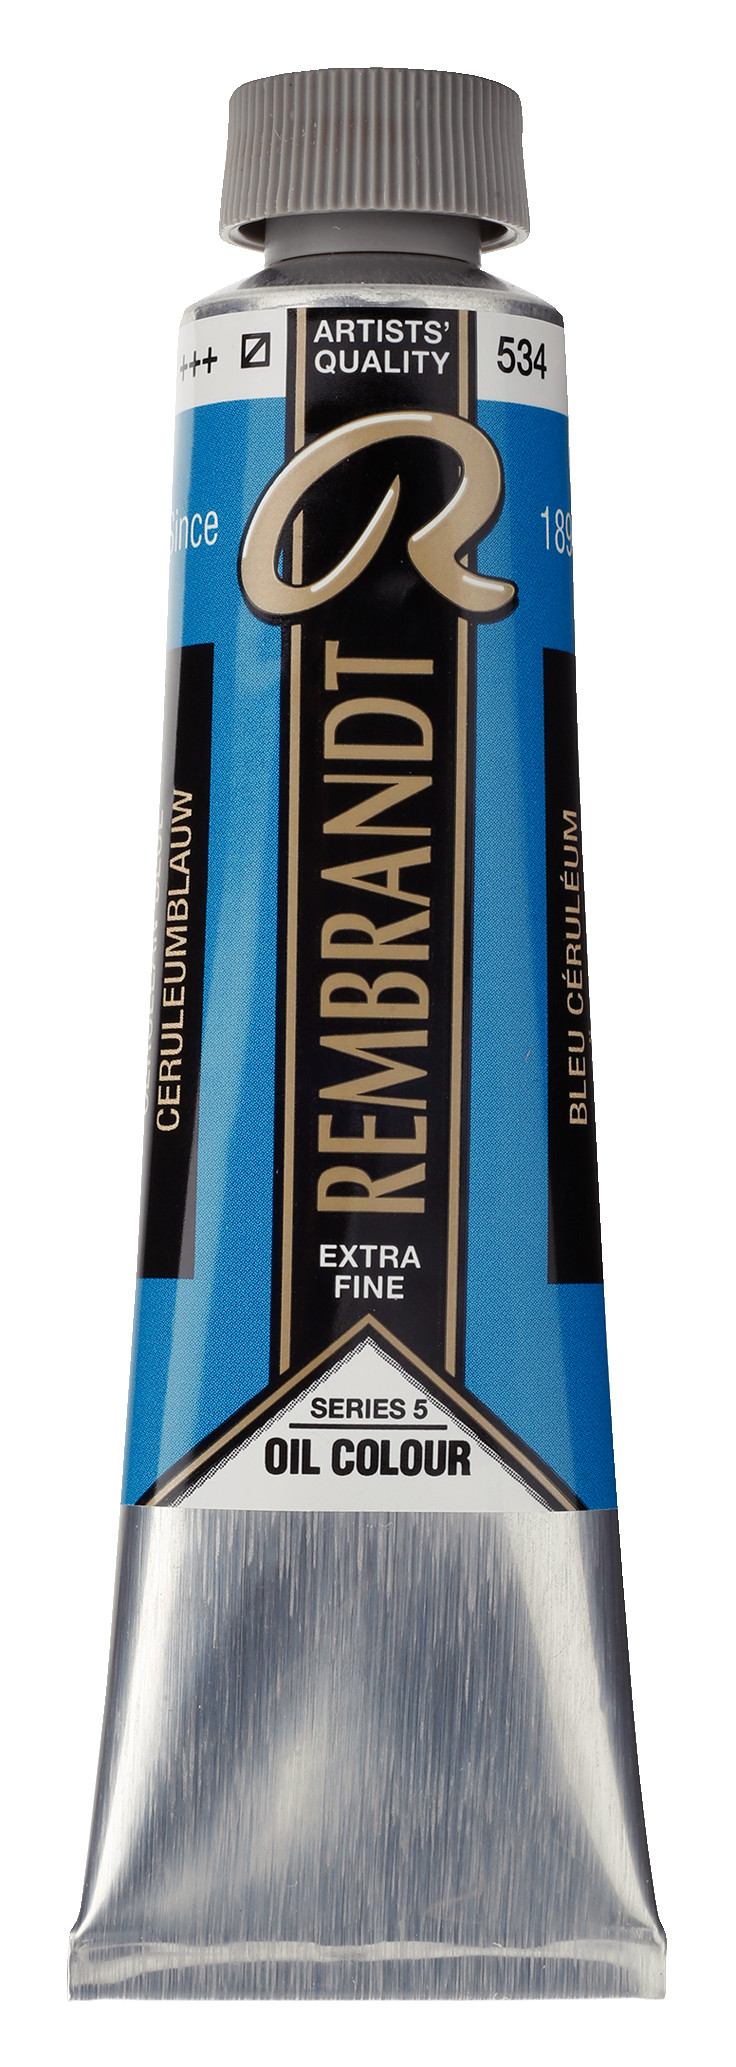 Rembrandt Oil colour Paint Cerulean Blue (534) 40ml Tube